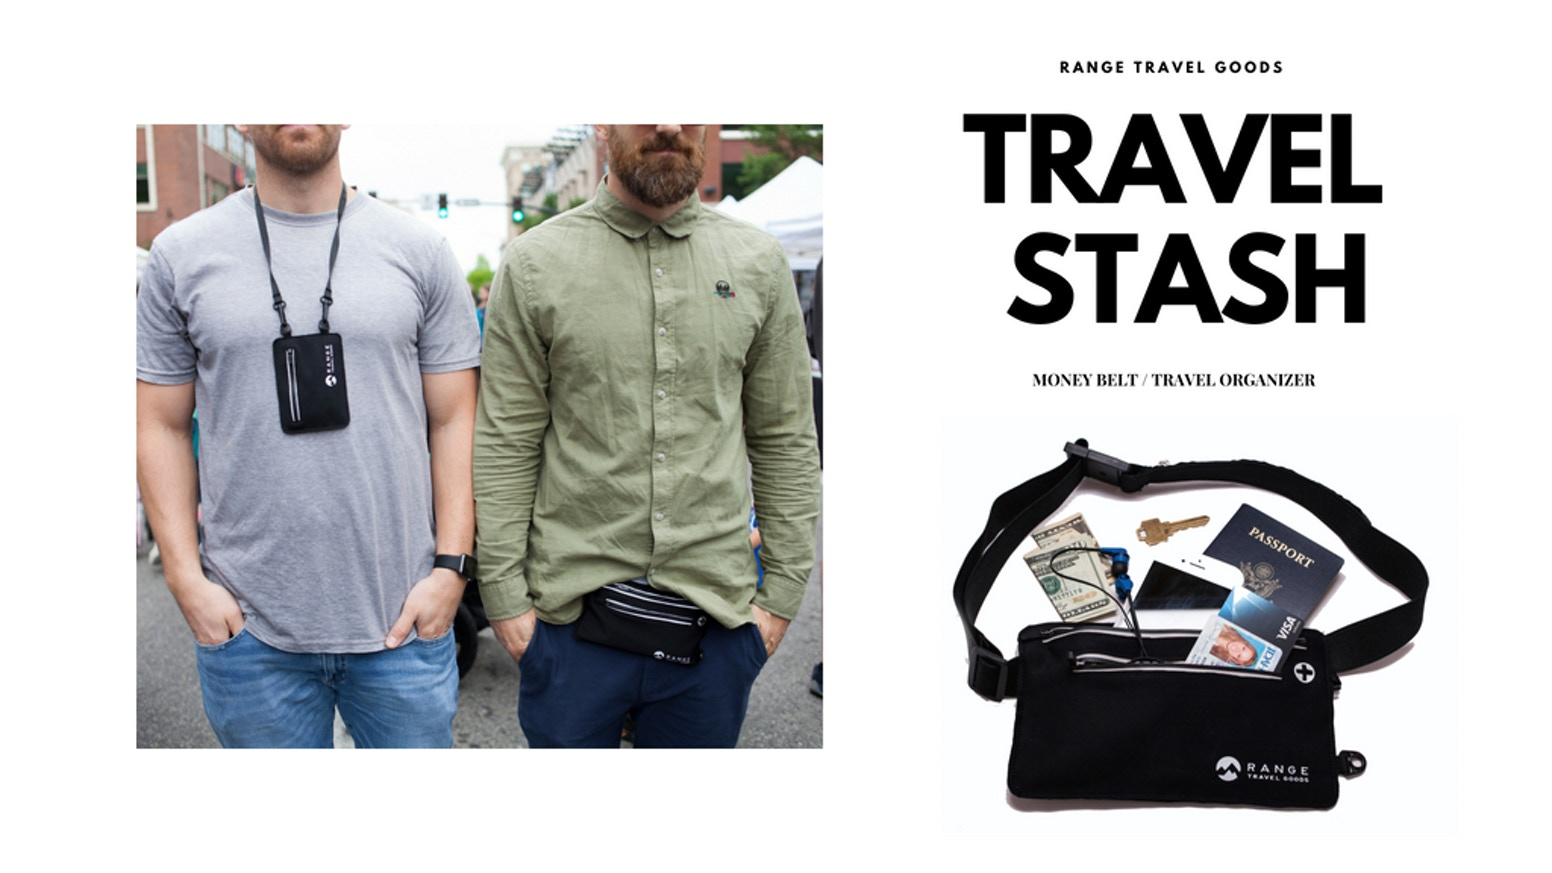 The Travel Stash - A minimal and secure way to carry your most valuable belongings. Use it while travelling, working out, or everyday